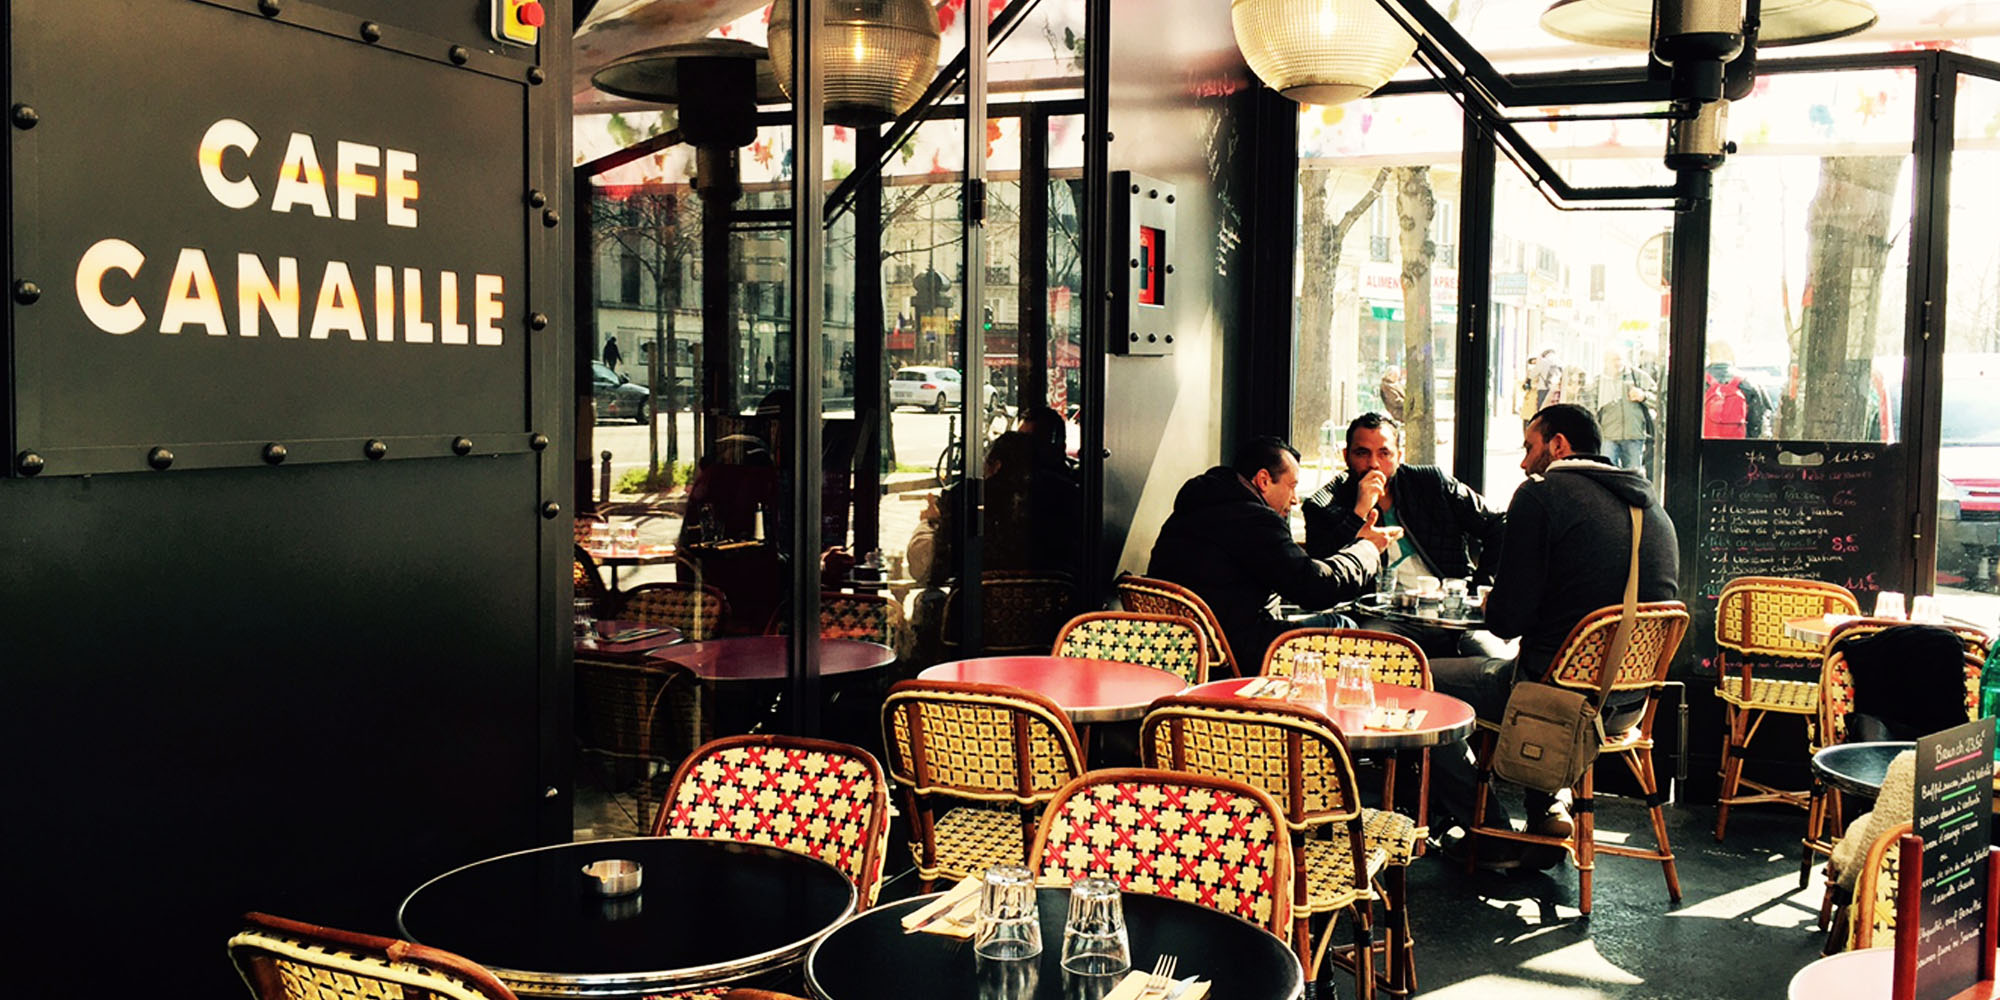 Brunch caf canaille 75011 paris 11 me oubruncher for Cafe divan 75011